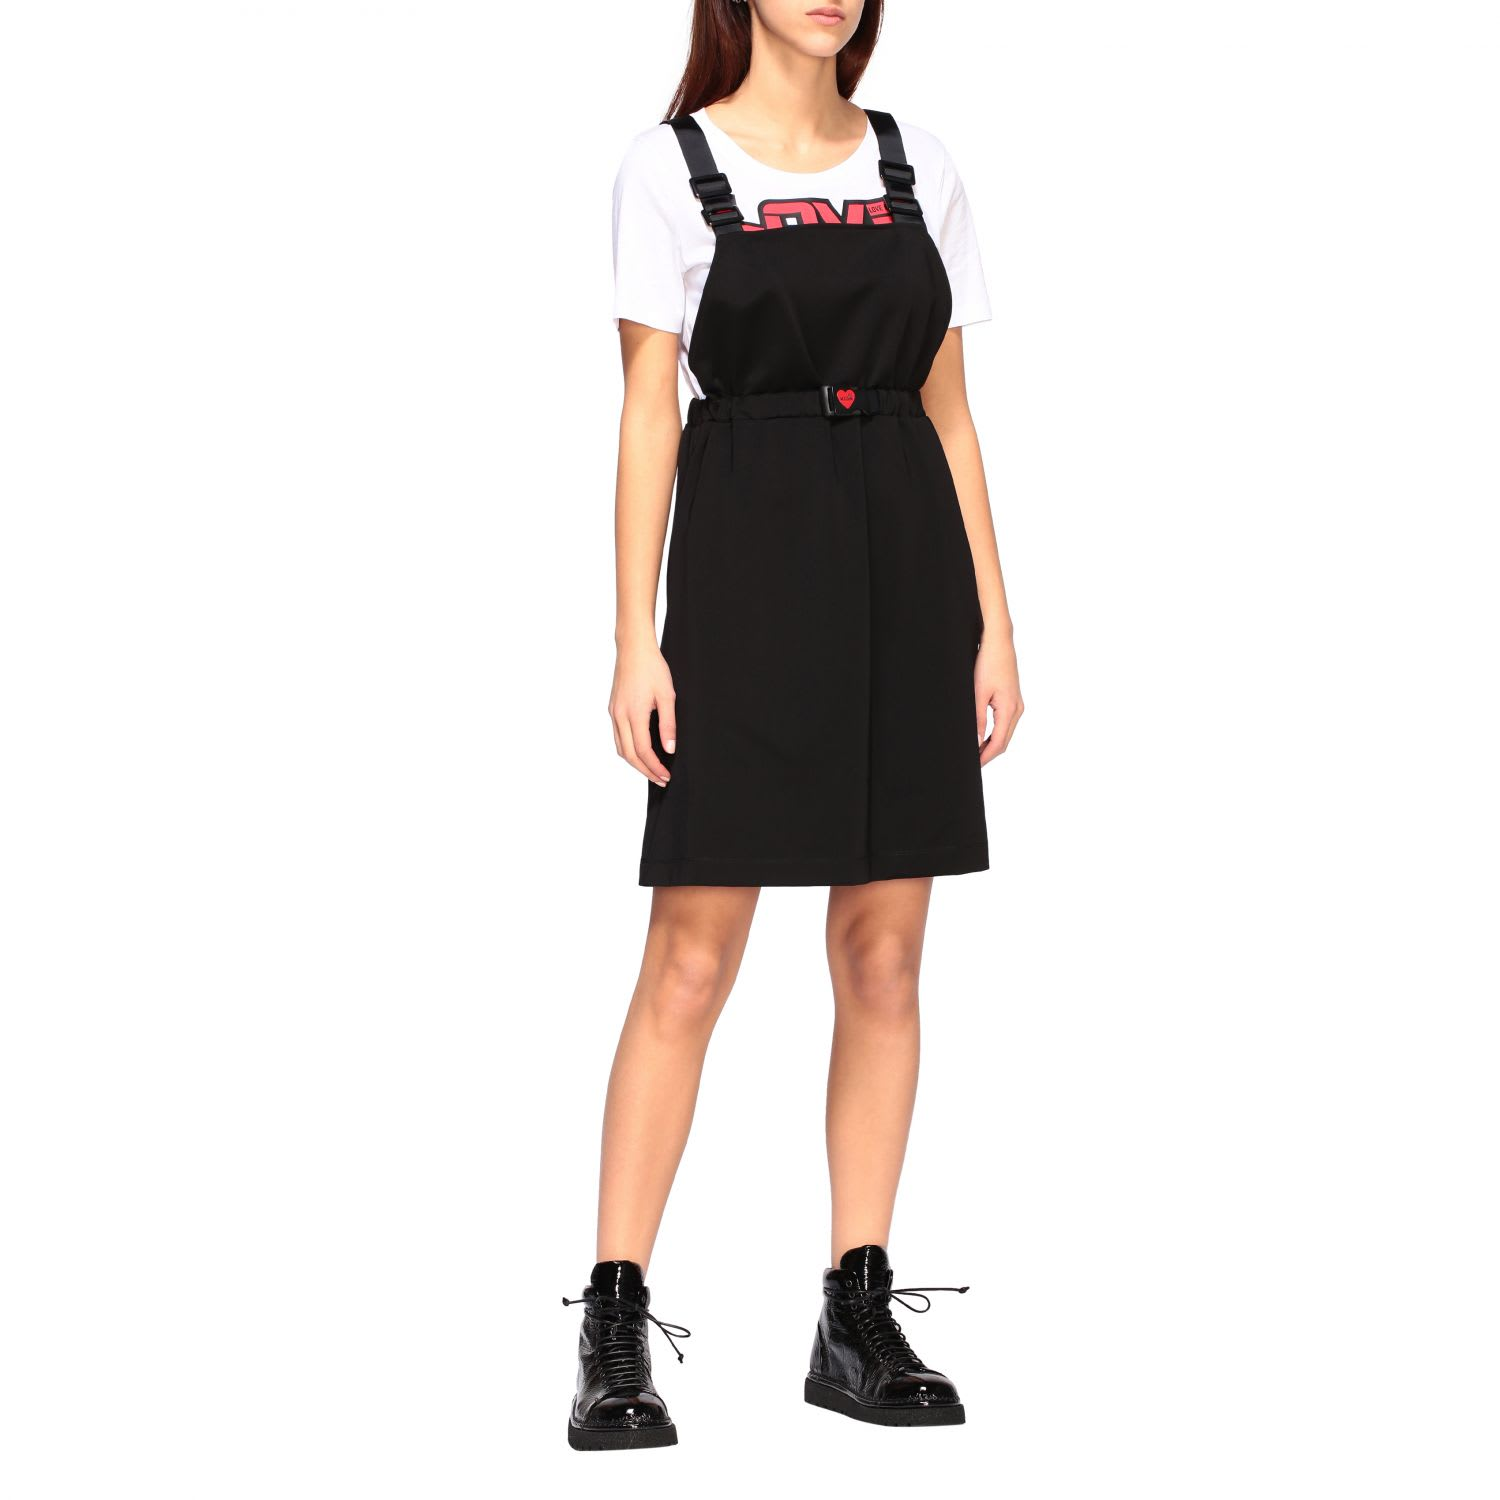 Buy Love Moschino Dress Love Moschino Dress With T-shirt And Dungarees With Logo Print online, shop Love Moschino with free shipping